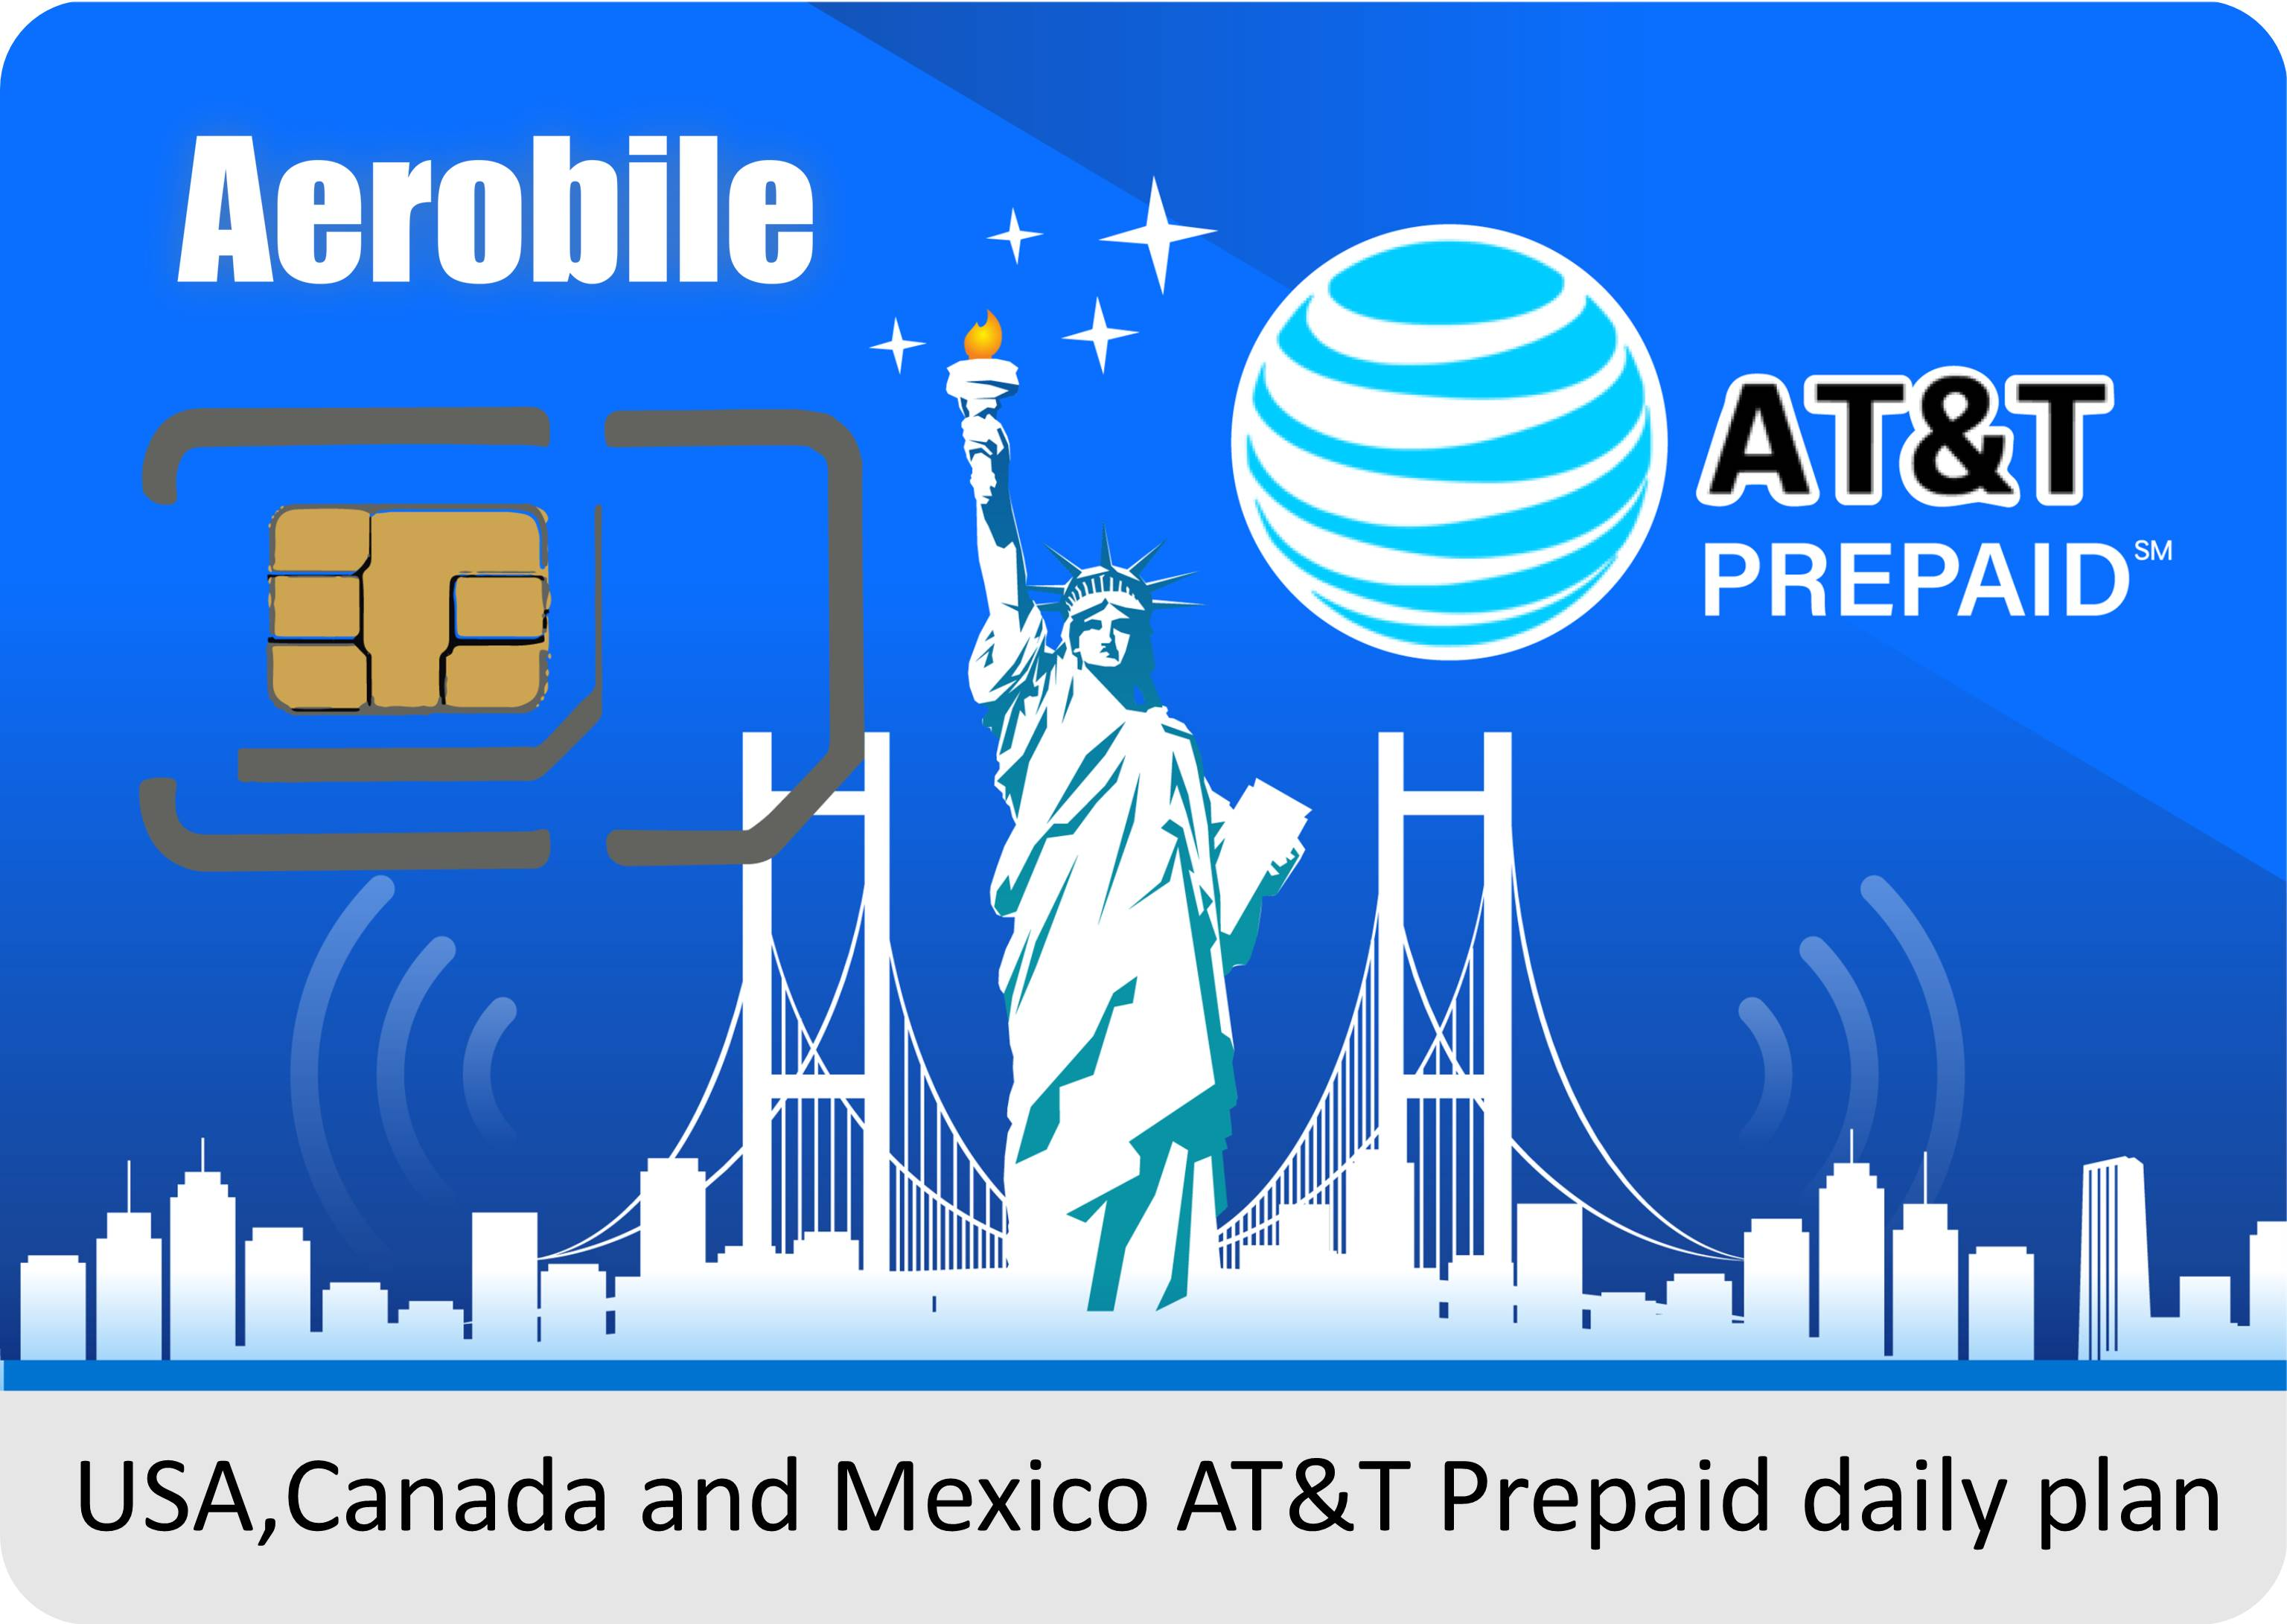 USA AT&T Prepaid SIM card - high speed data + unlimited calls (service in USA,Canada and Mexico)